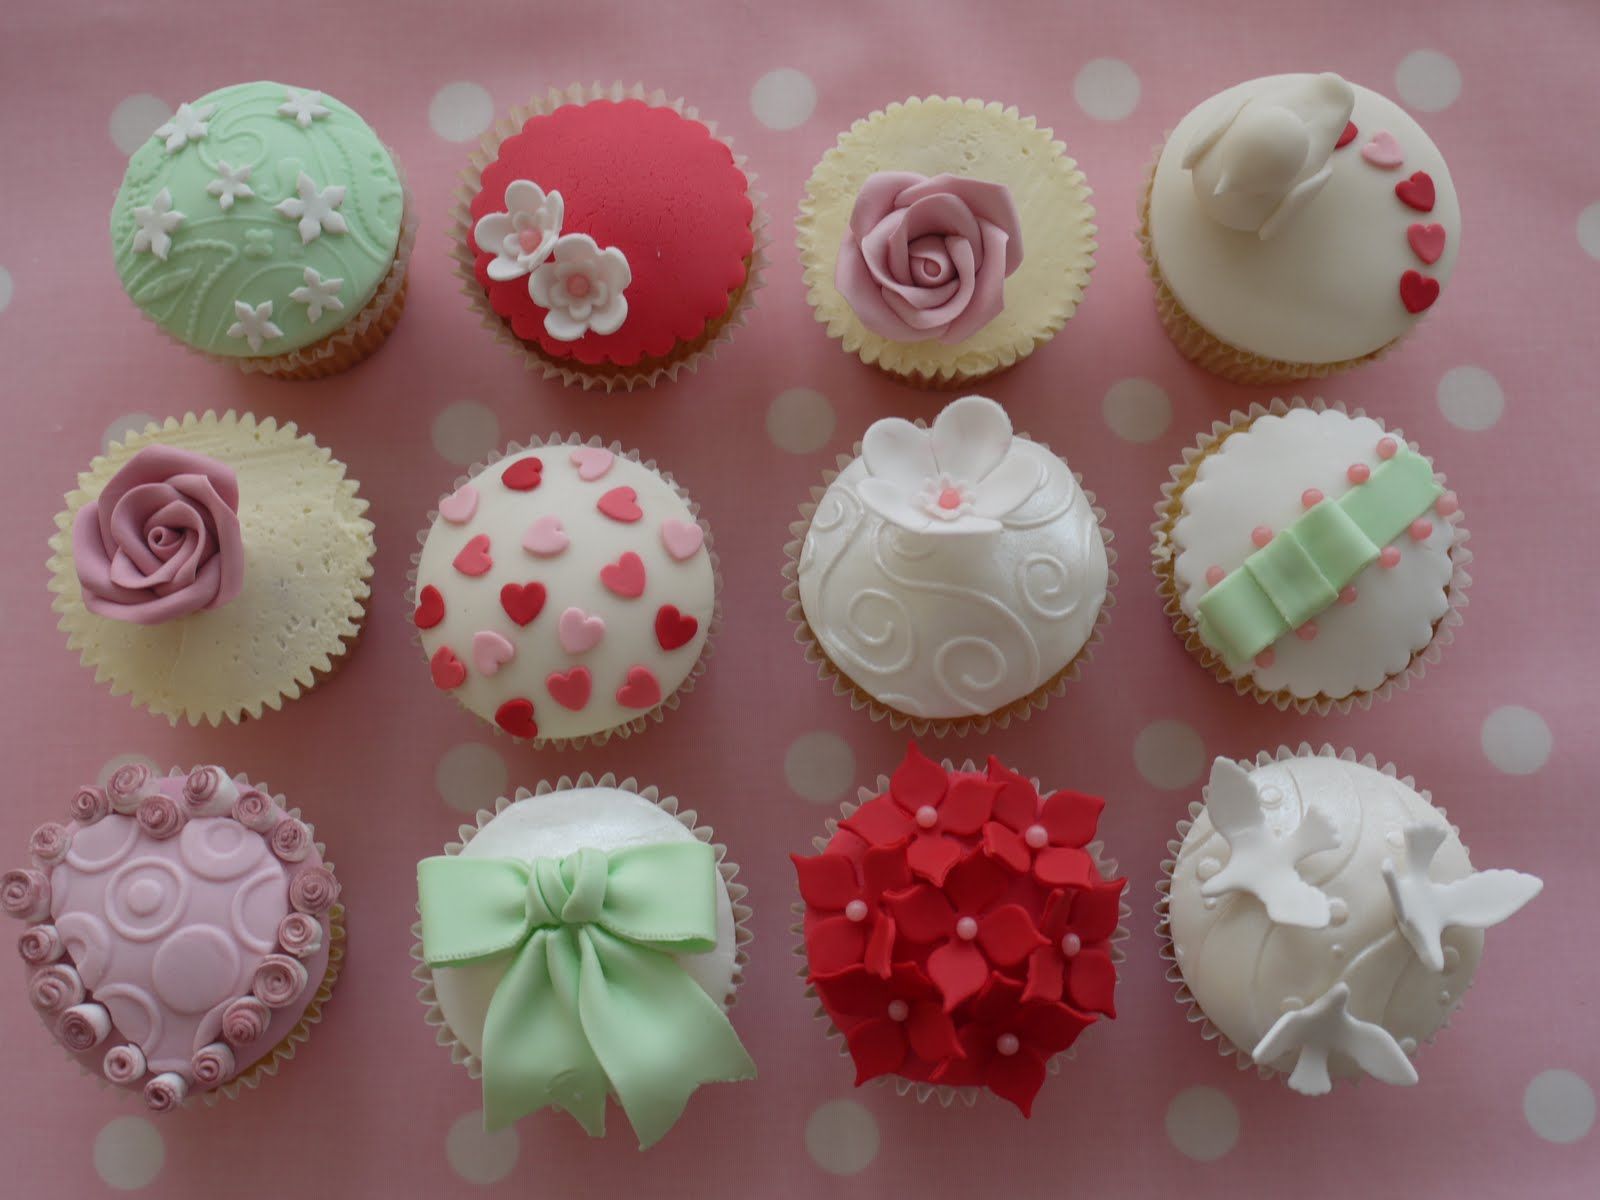 Decorating Cupcakes With Frosting Tip